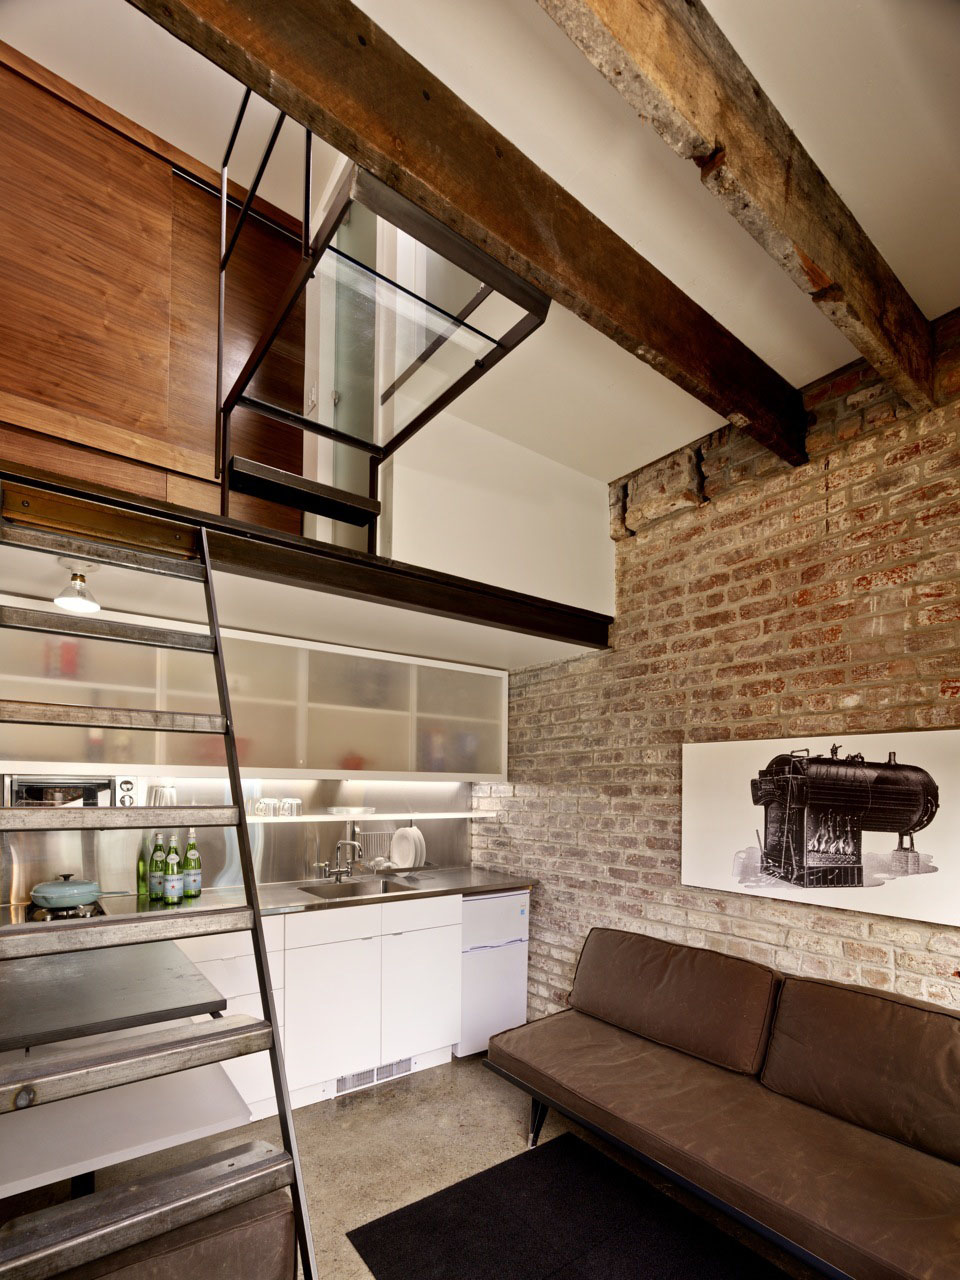 160 Square Foot Micro Apartment In A Tiny Brick House Idesignarch